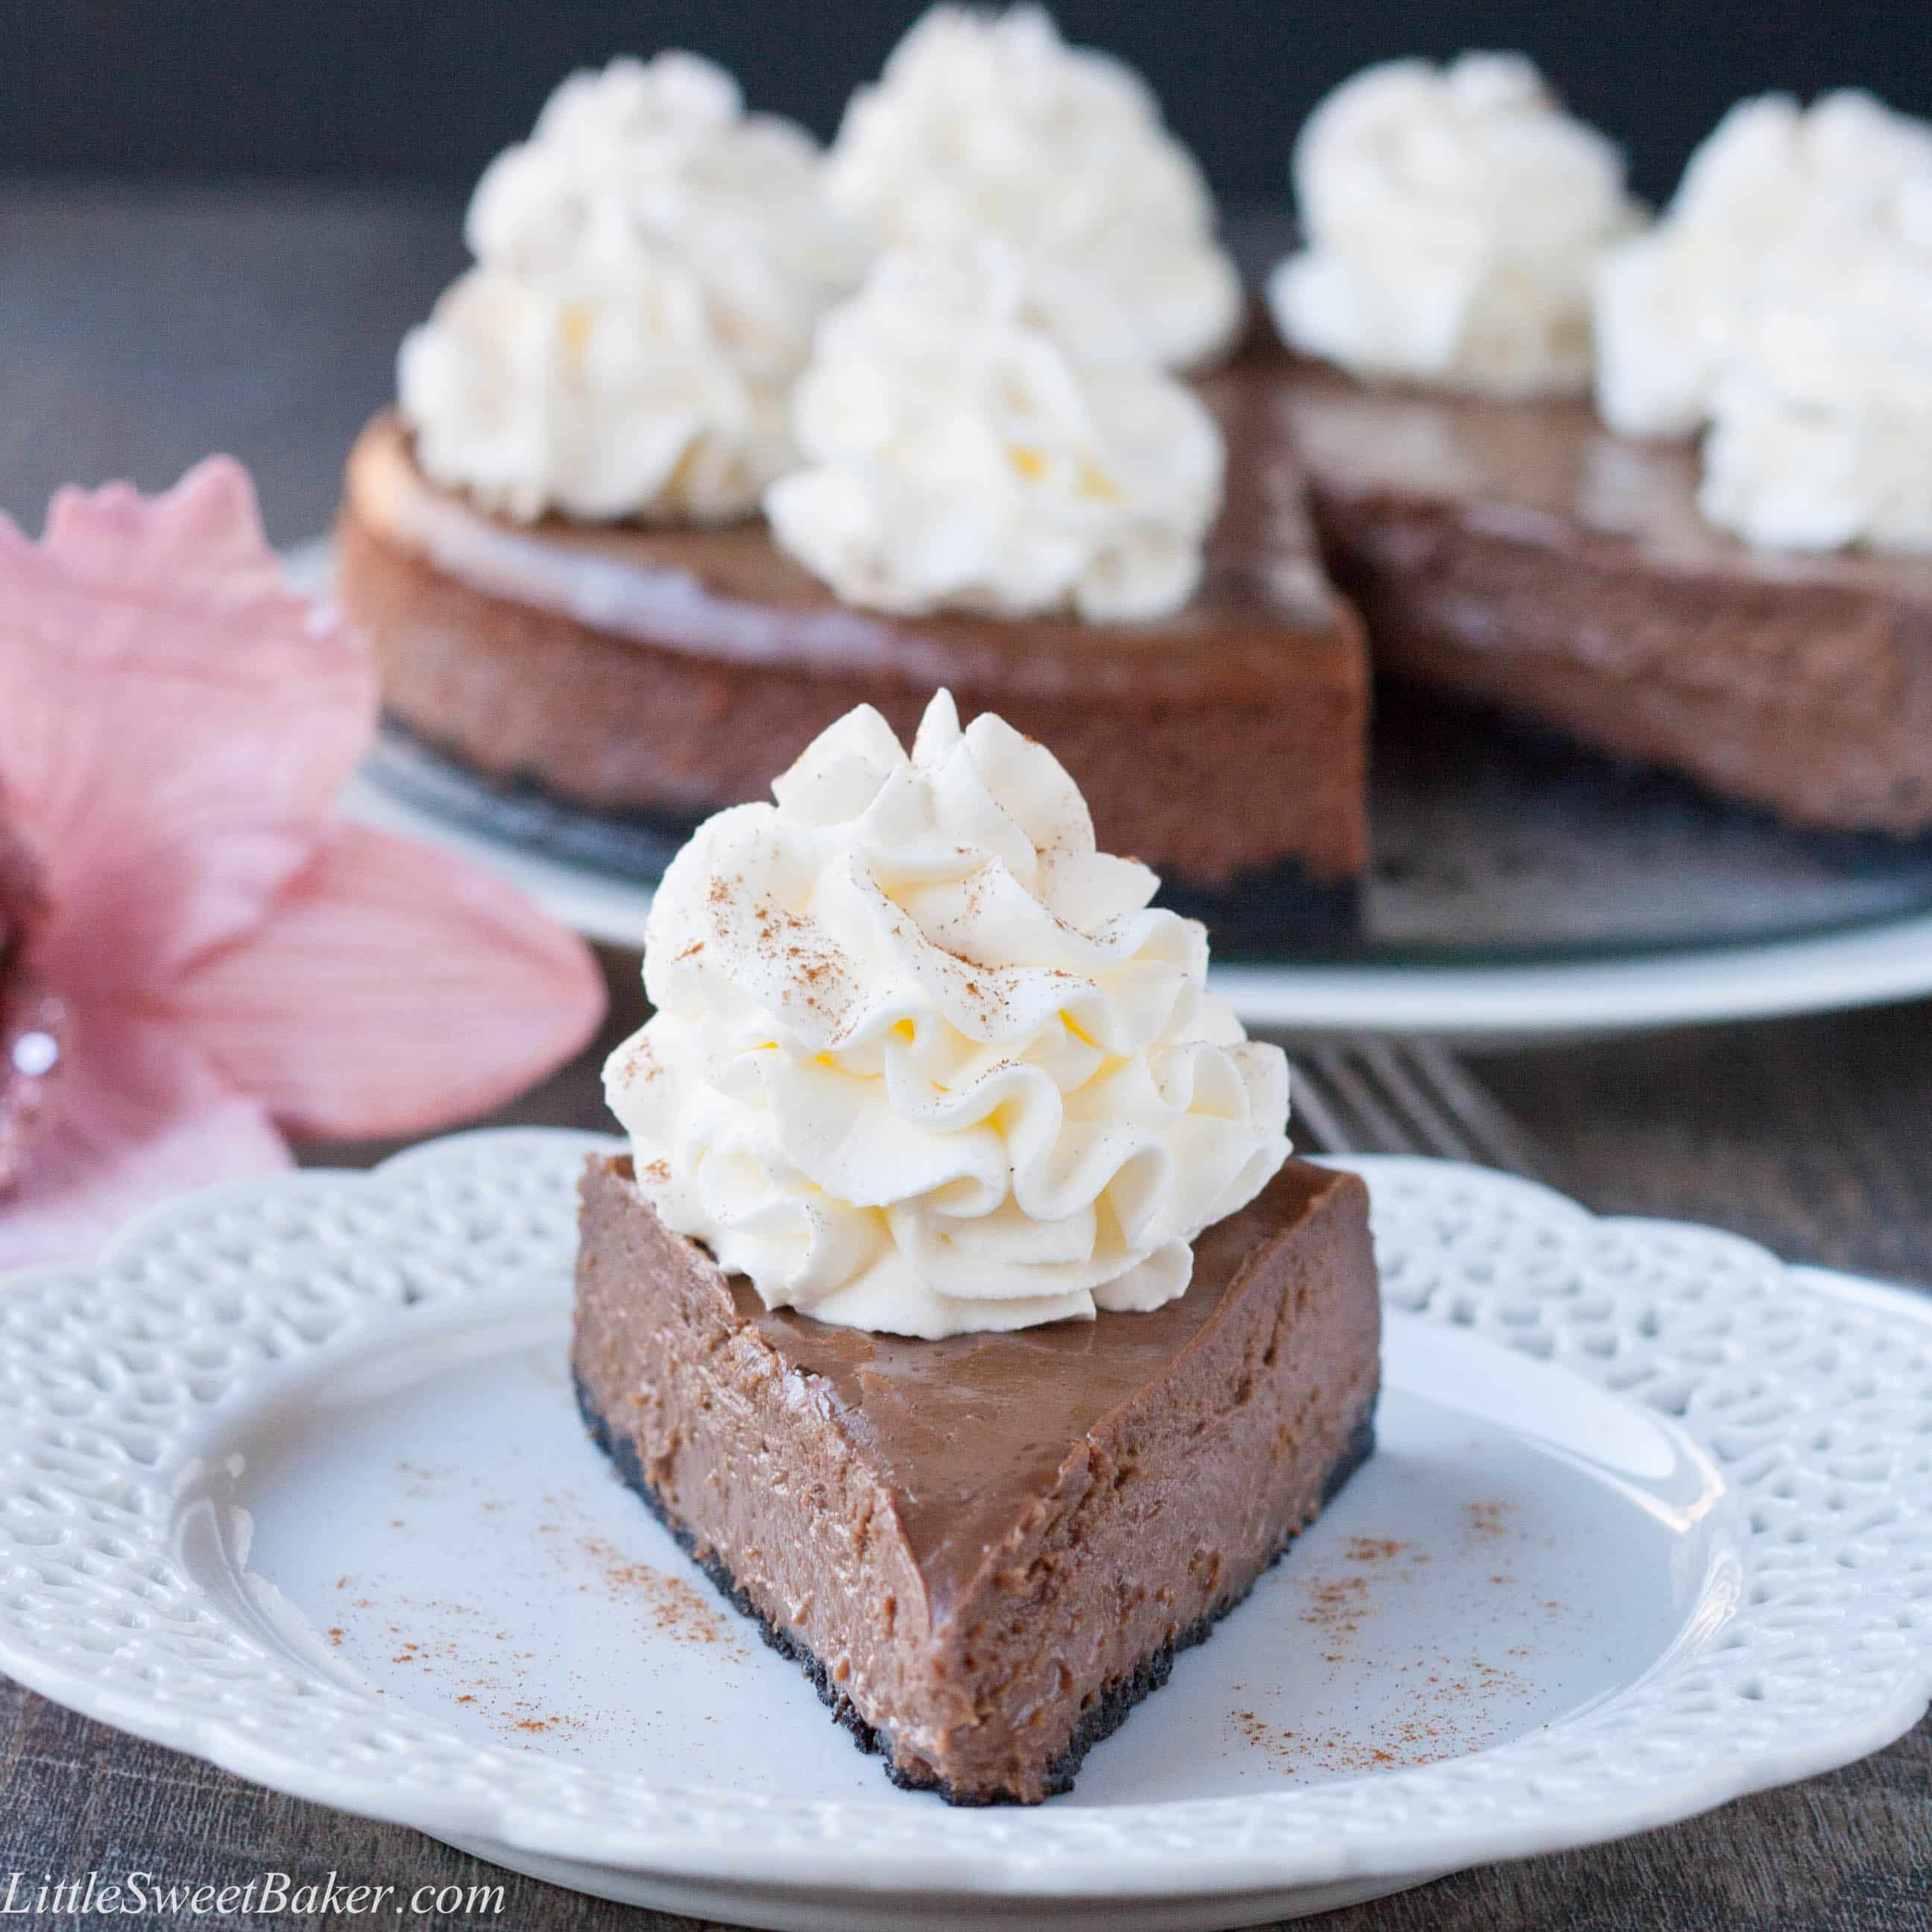 CHOCOLATE CINNAMON CHEESECAKE. Super easy to make, only 6 ingreds ...